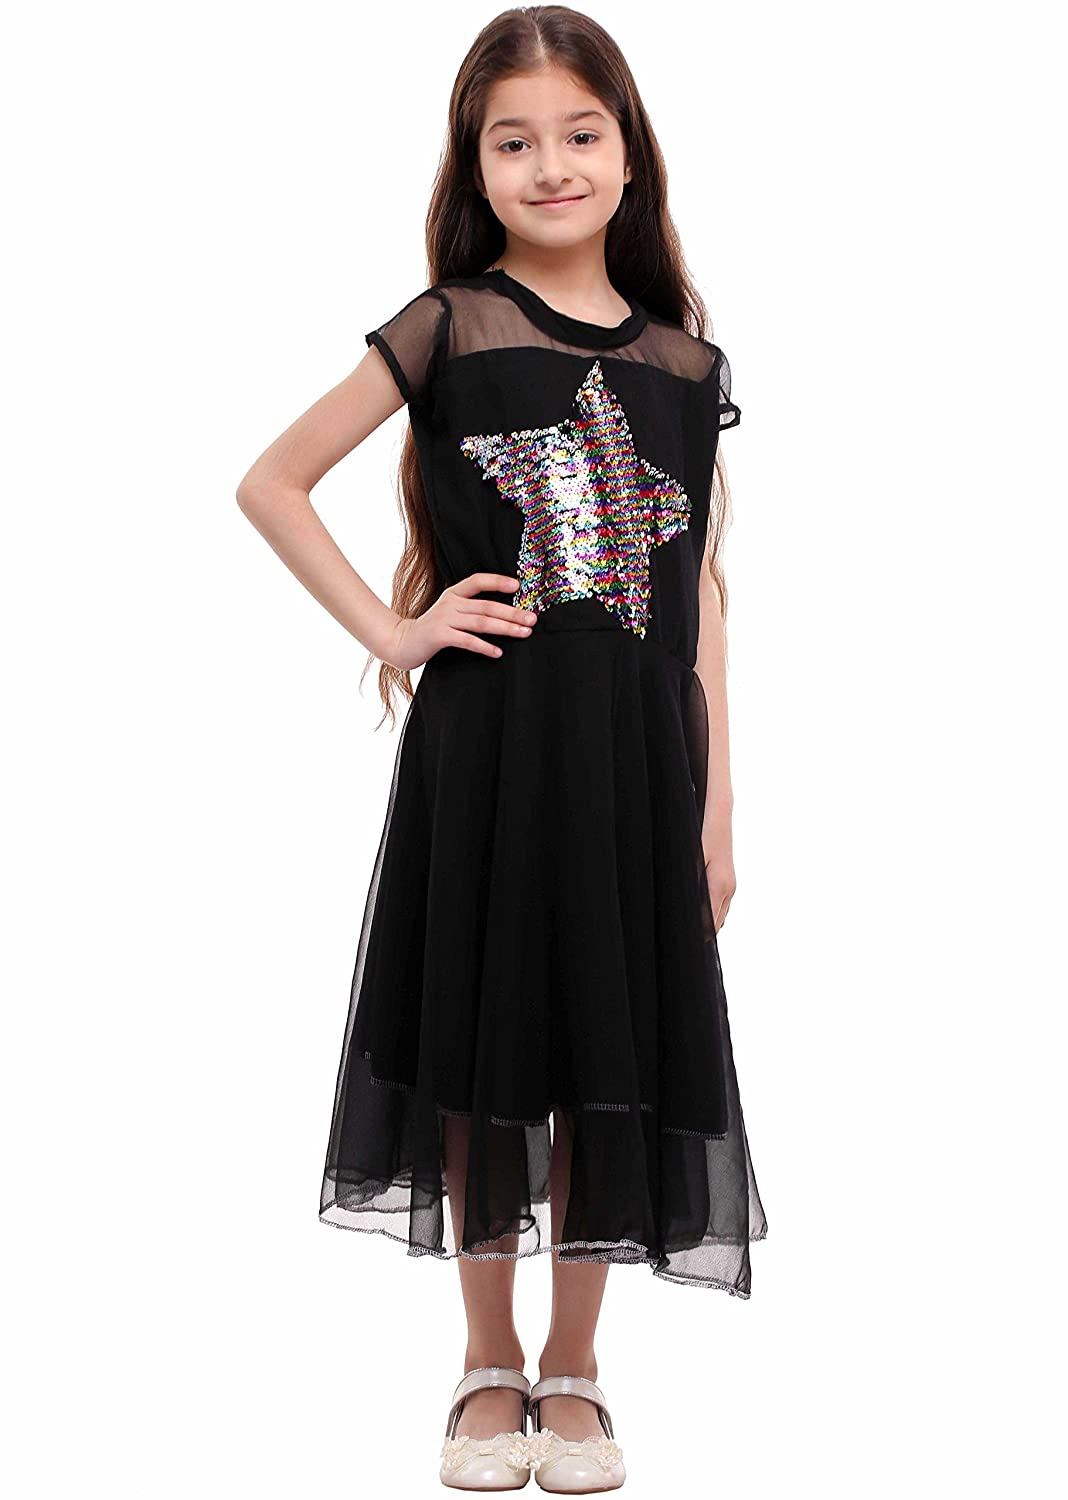 cc0a79088596 tshirt.in Kids Reversible Rainbow Sequin Star Dress (8-9 Years): Amazon.in:  Clothing & Accessories